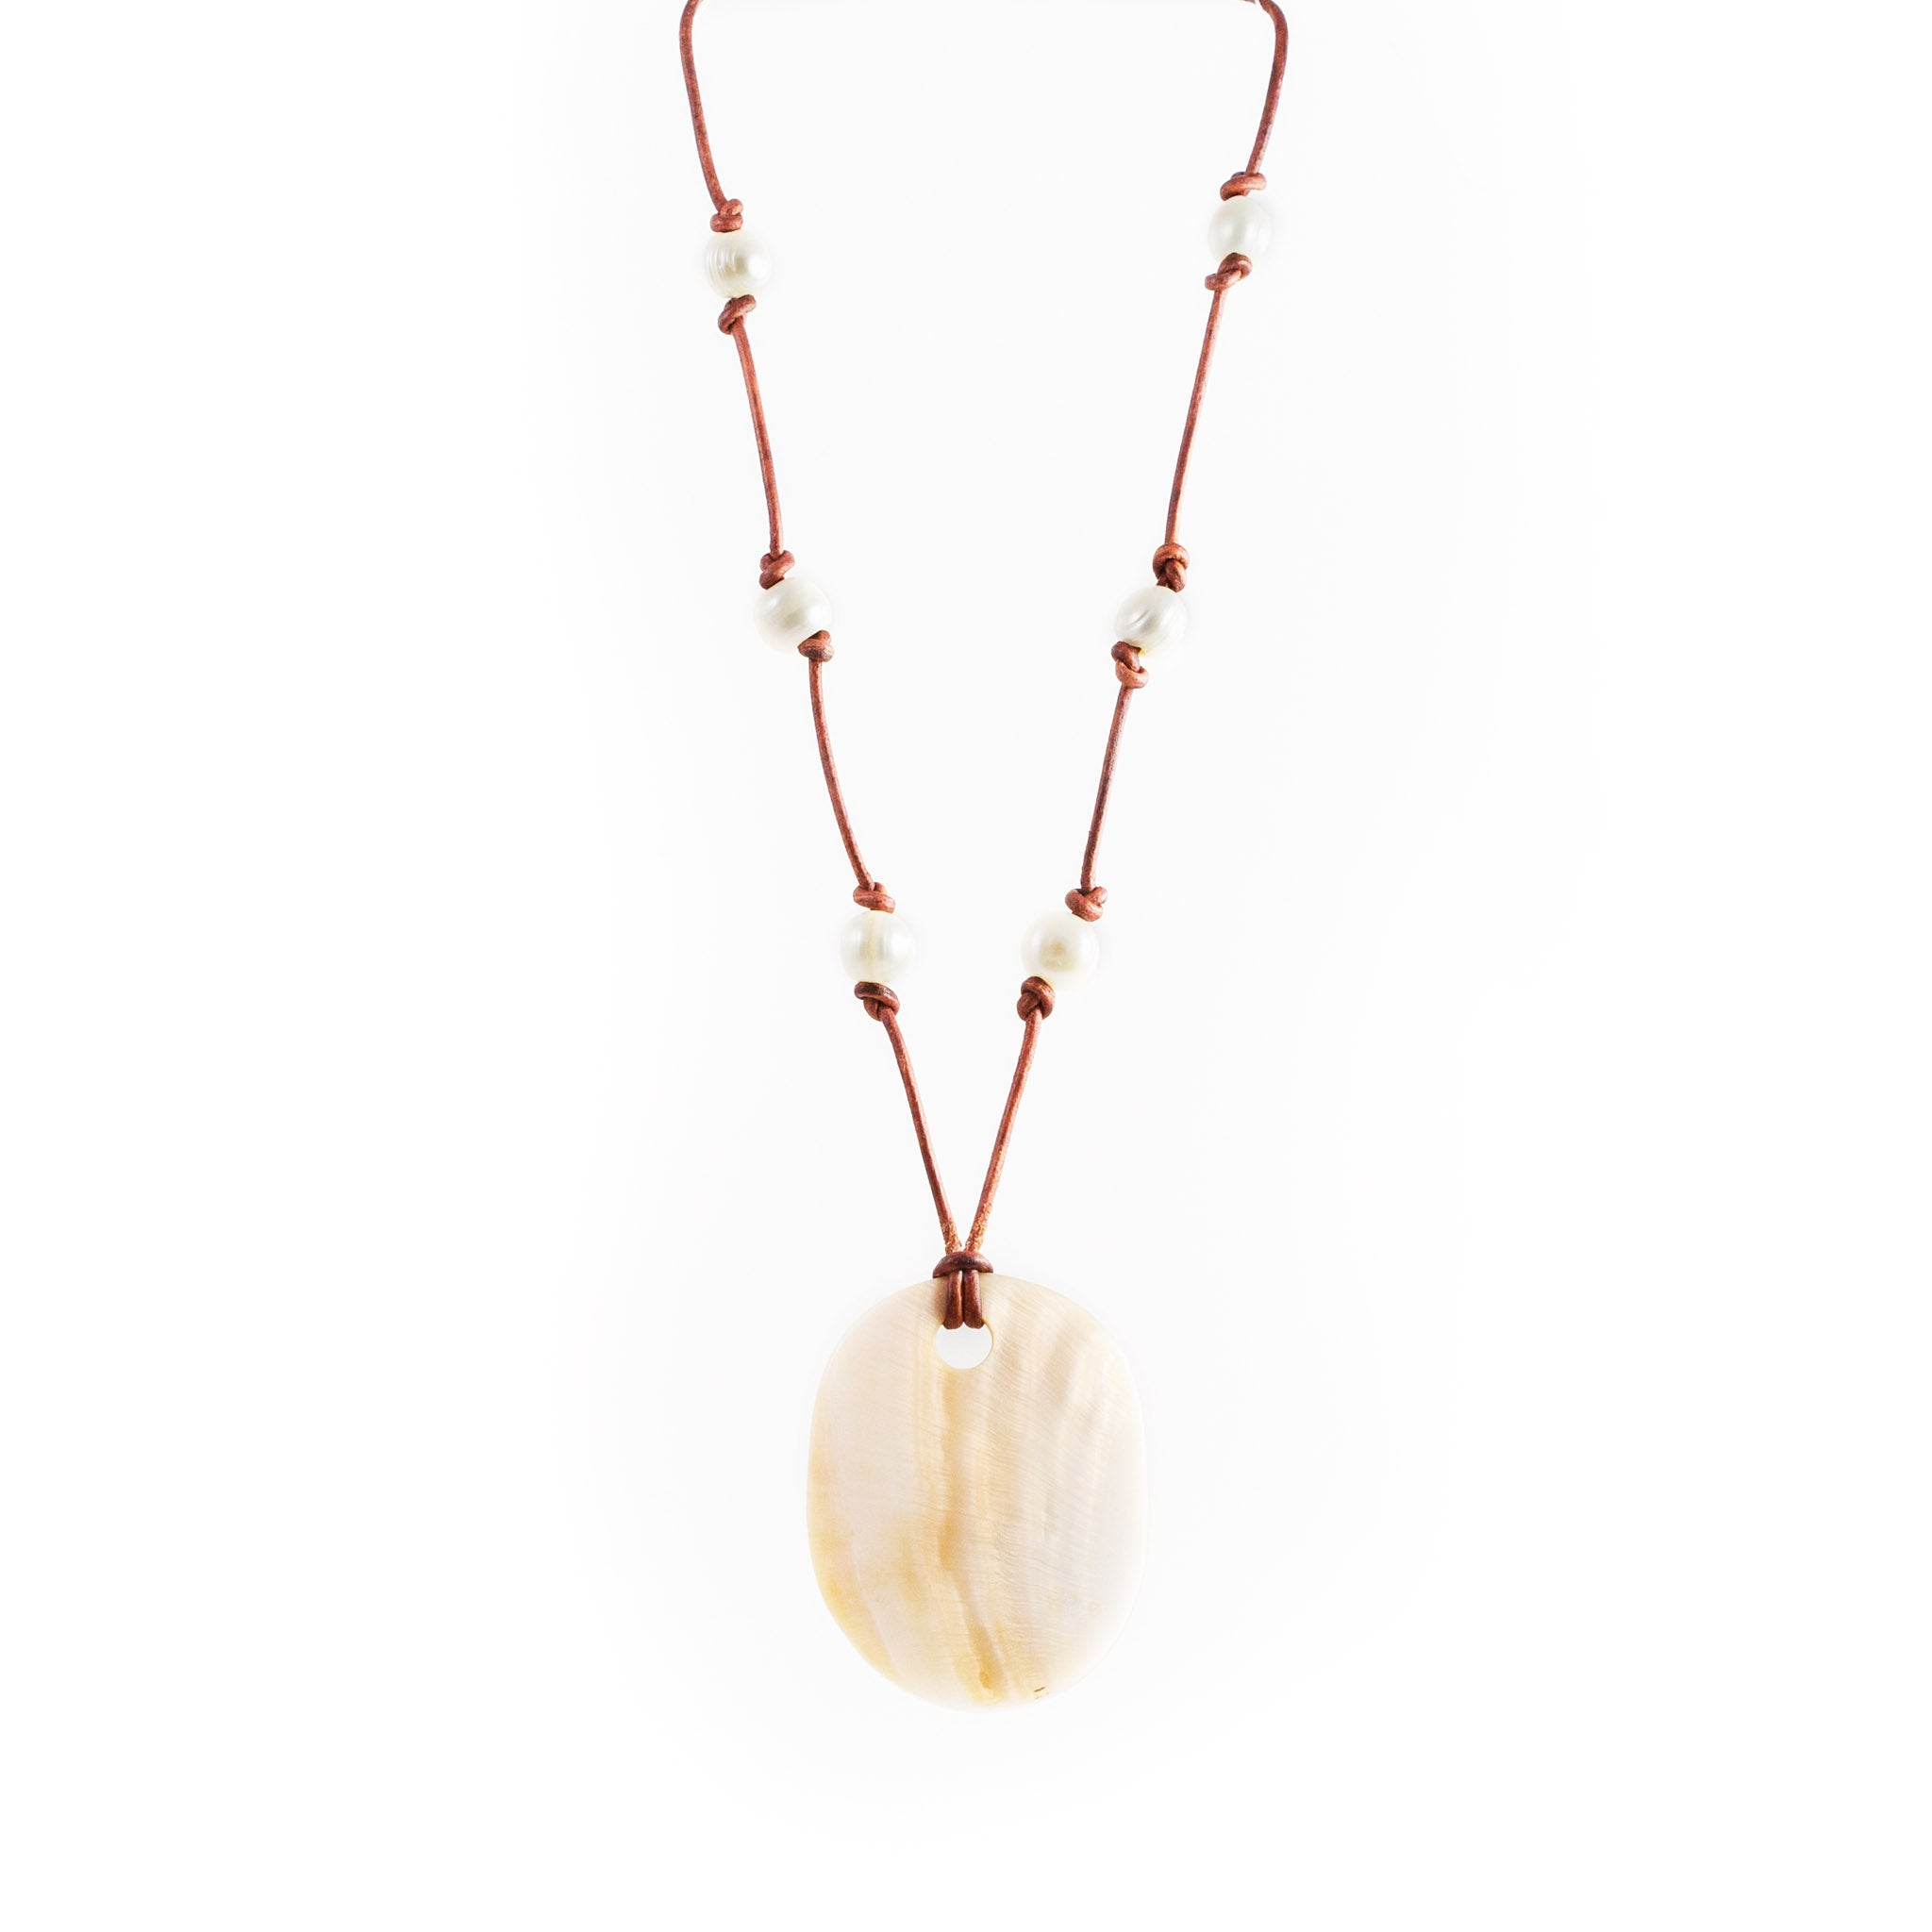 Nature Mother of Pearl Pendant Necklace